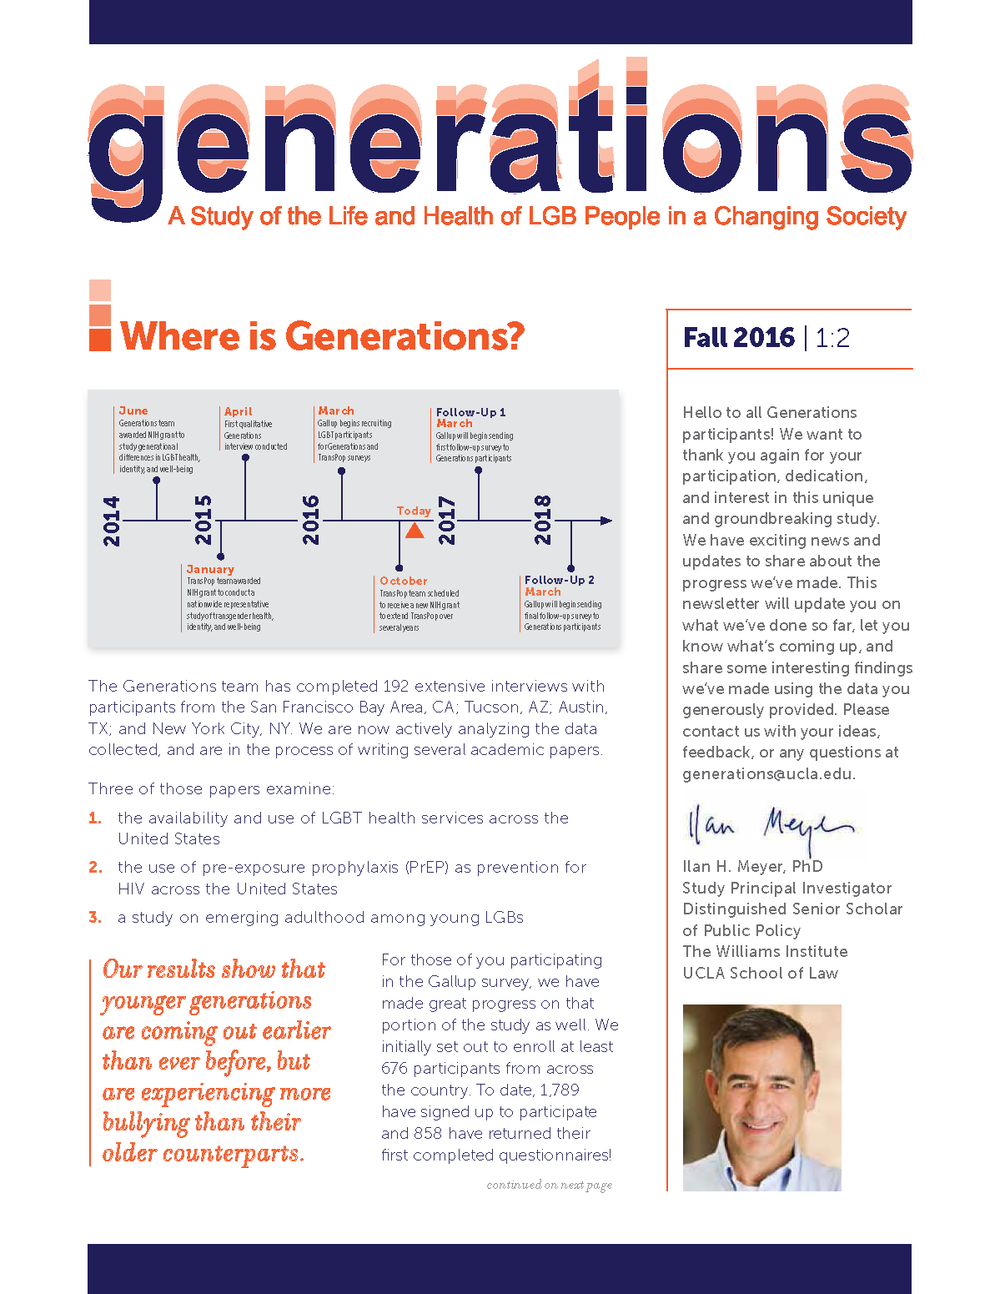 UCLAWI_GenerationsNewsletter_Fall2016_v7_FINAL_Page_1.png